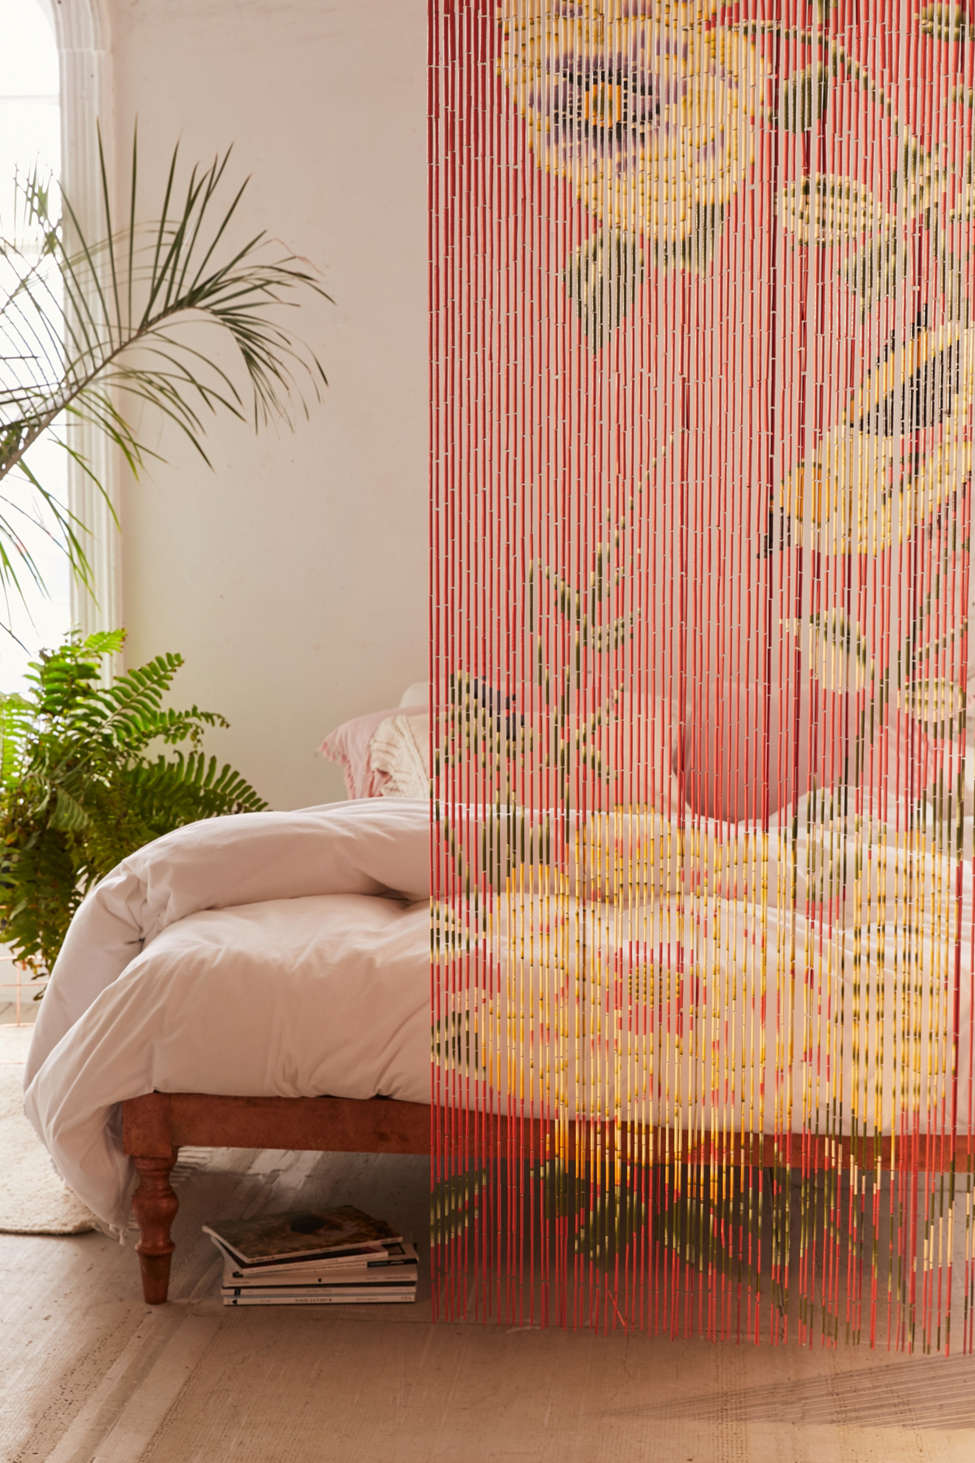 Slide View: 1: Floral Bamboo Beaded Curtain